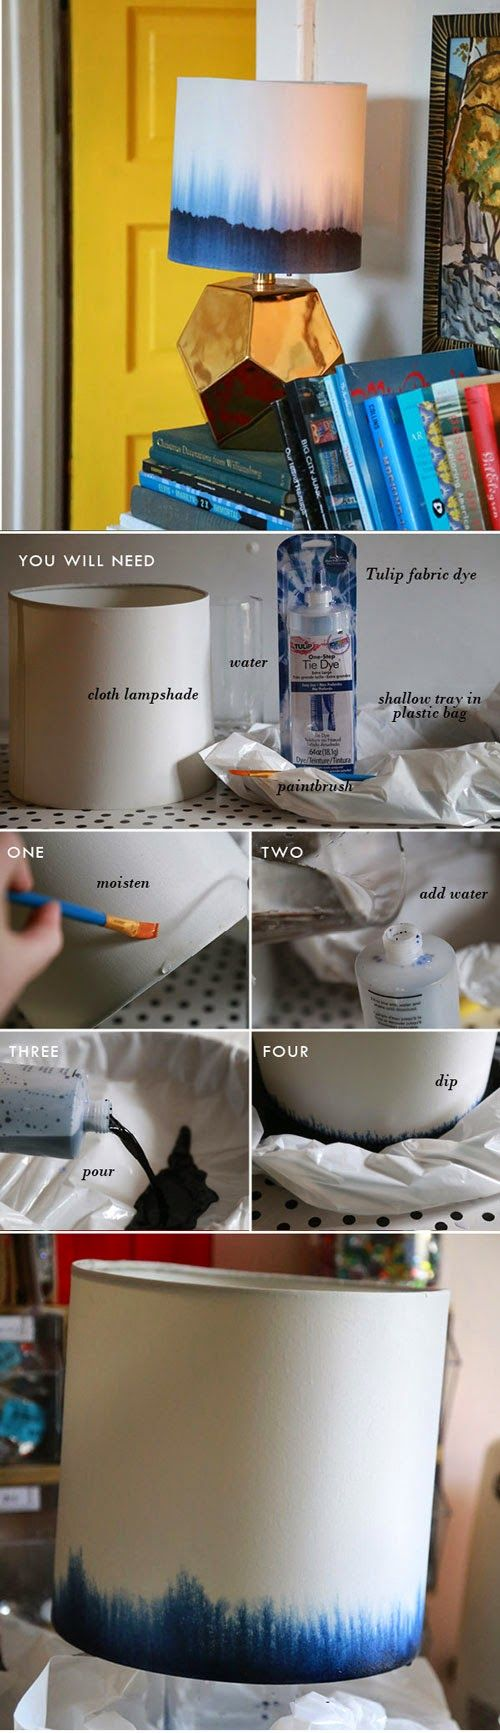 DIY - Dip-Dye Lampshade, Tutorial from iLoveToCreate Blog